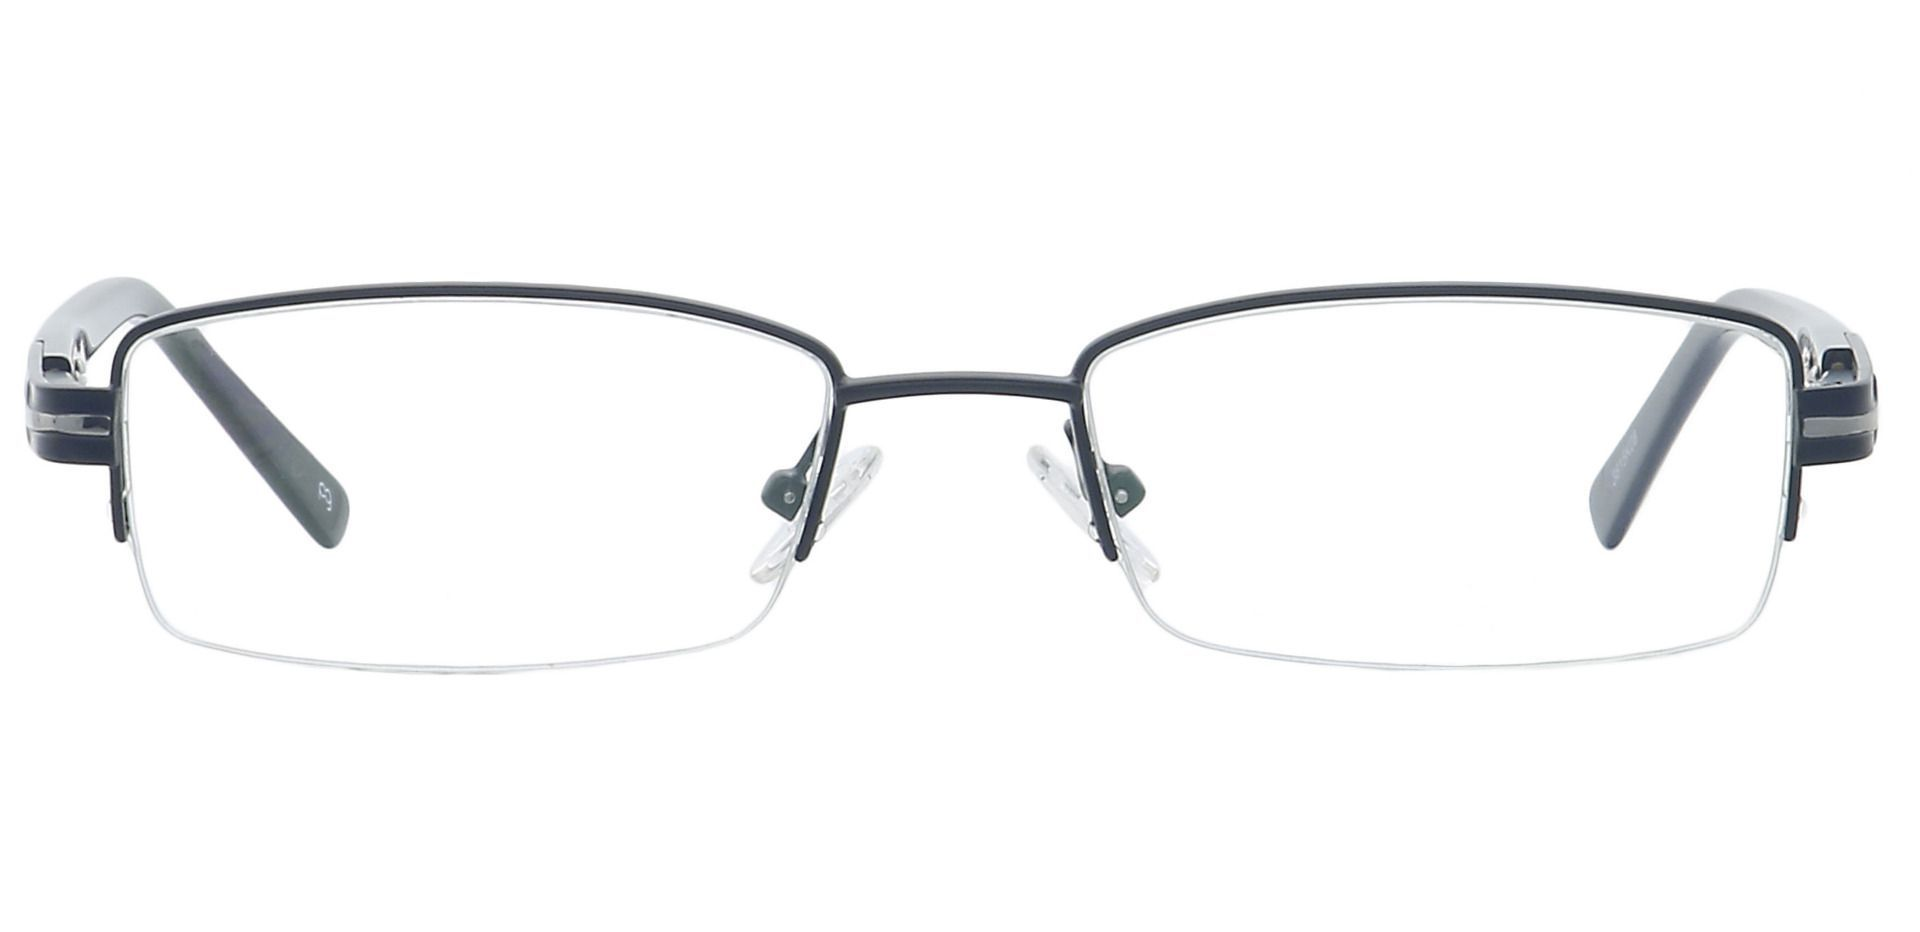 Reed Rectangle Blue Light Blocking Glasses - Black